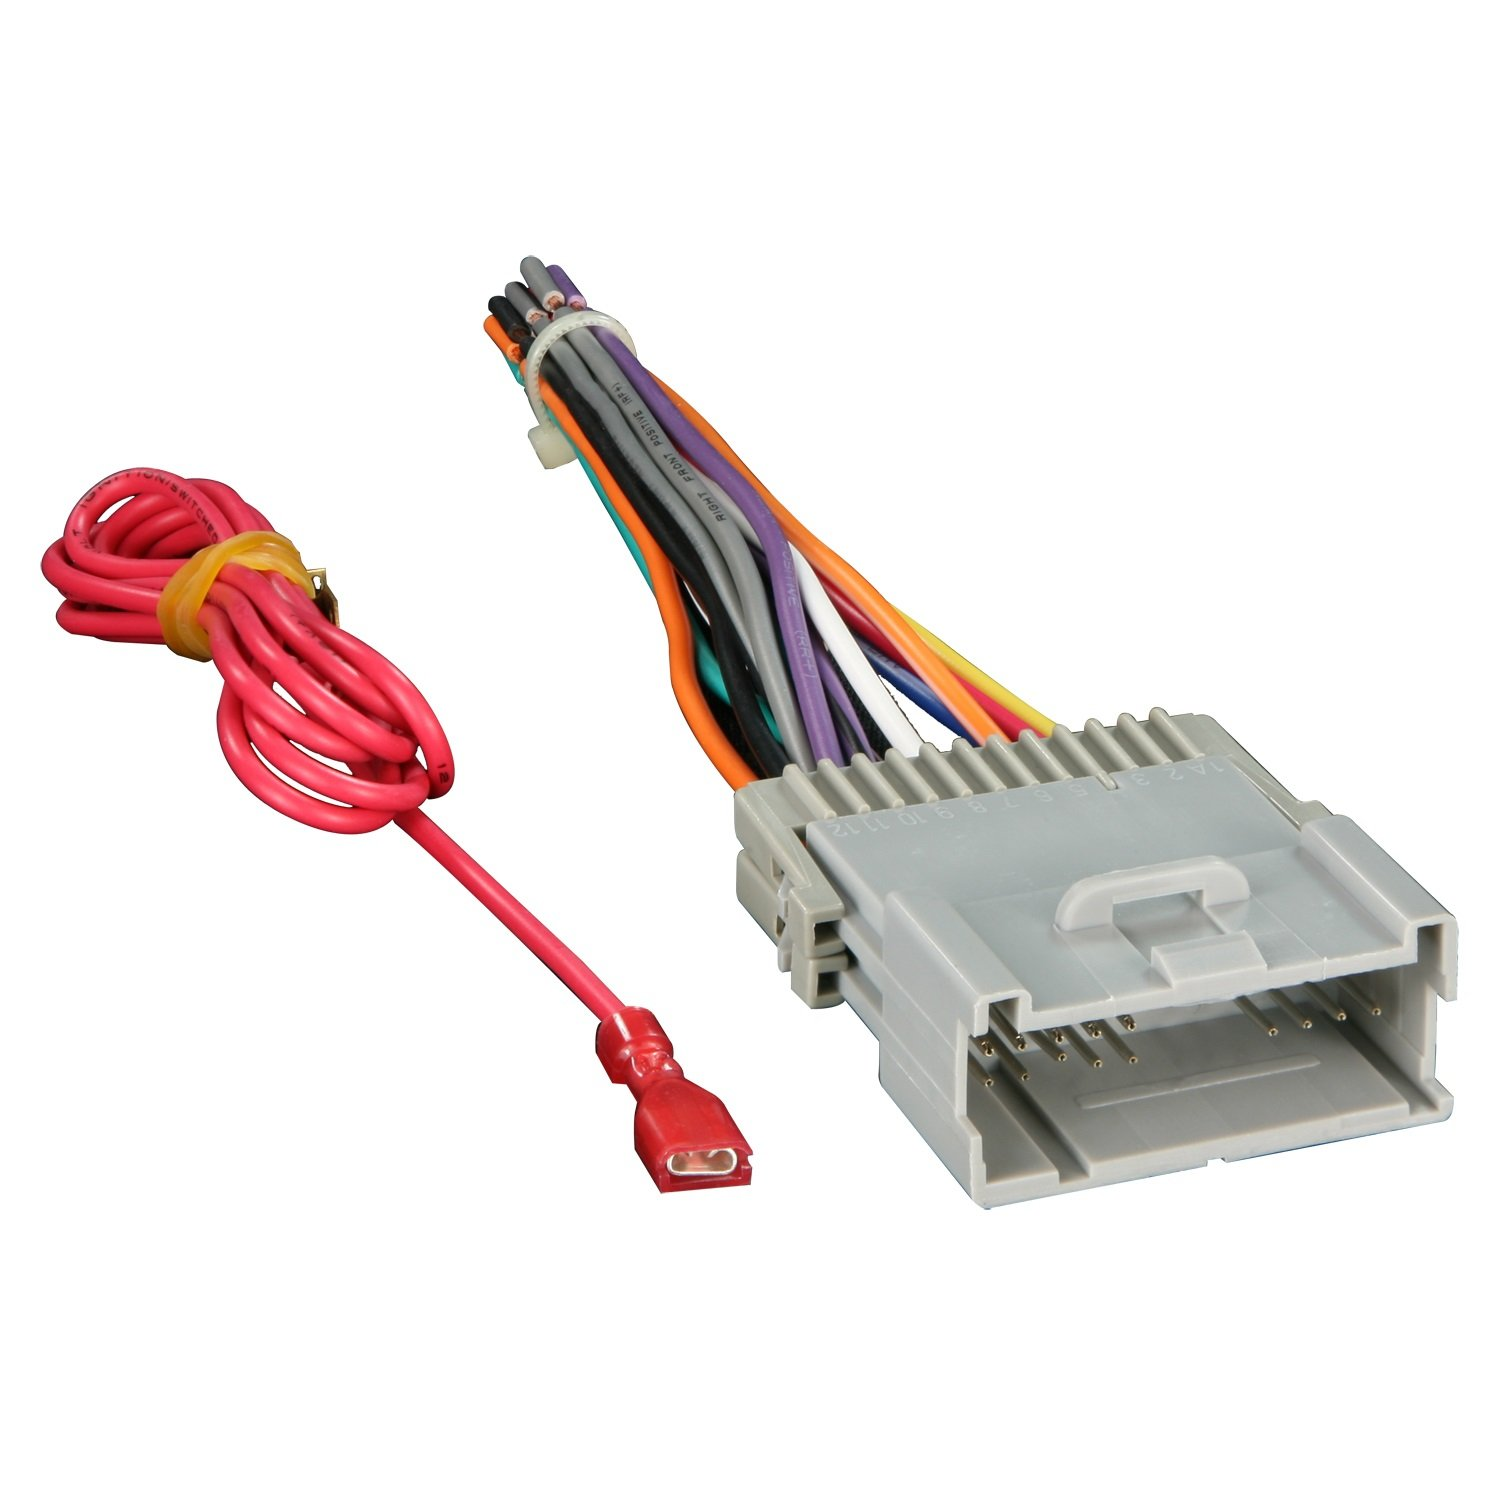 61eewxp9orL._SL1500_ amazon com metra 70 2003 radio wiring harness for gm 98 08  at n-0.co